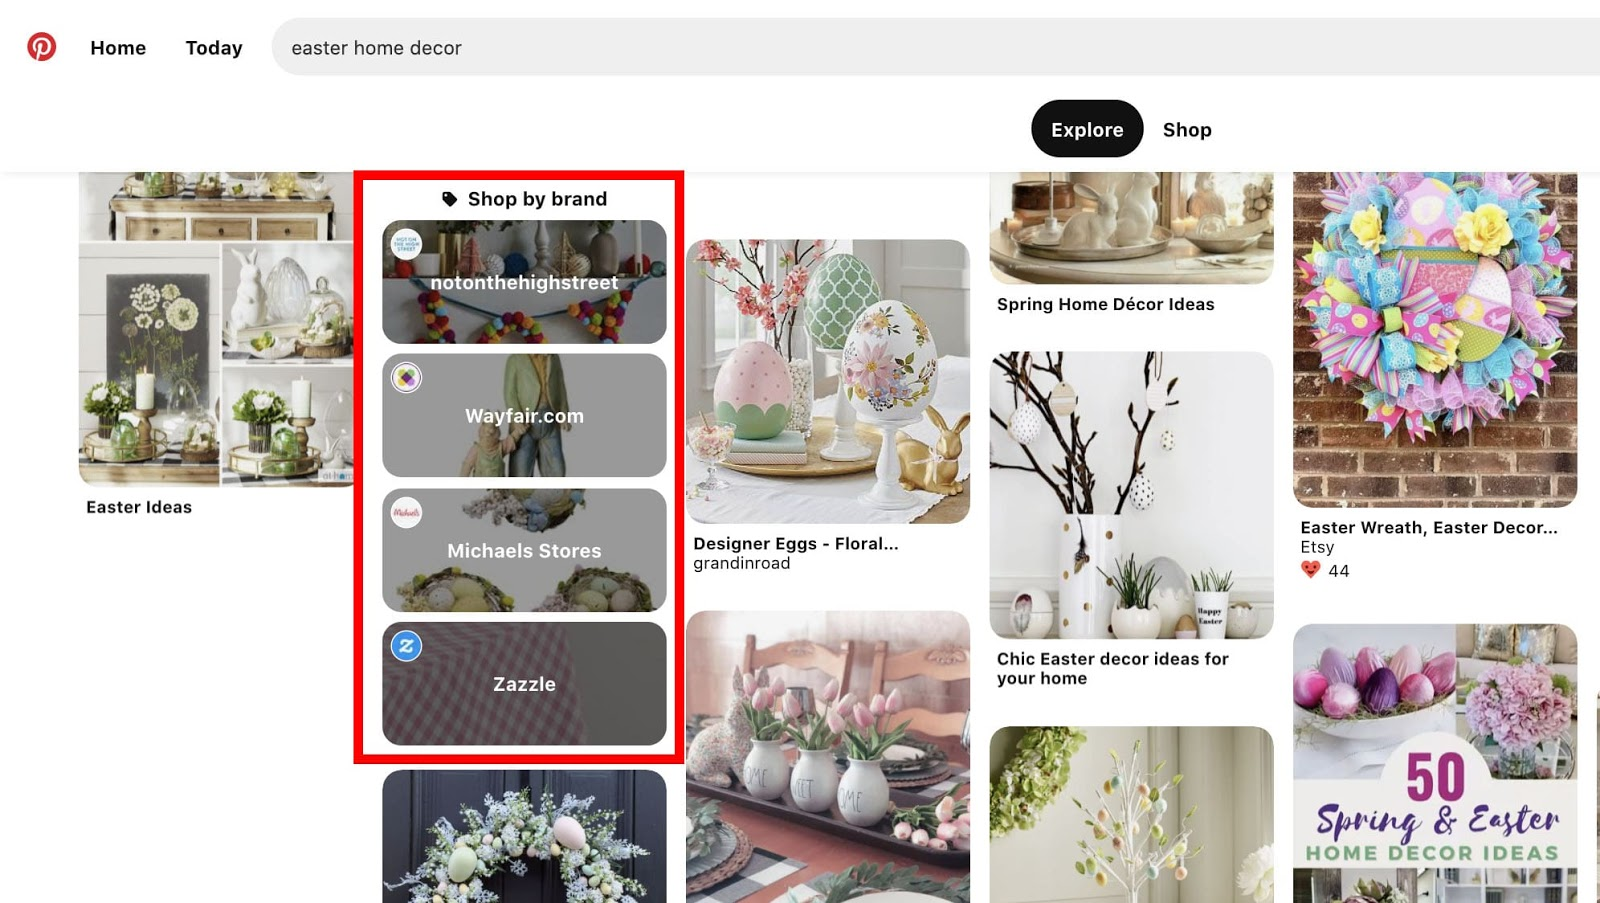 """Pinterest's """"Shop by Brand"""" category on the search results page for """"easter home decor"""""""